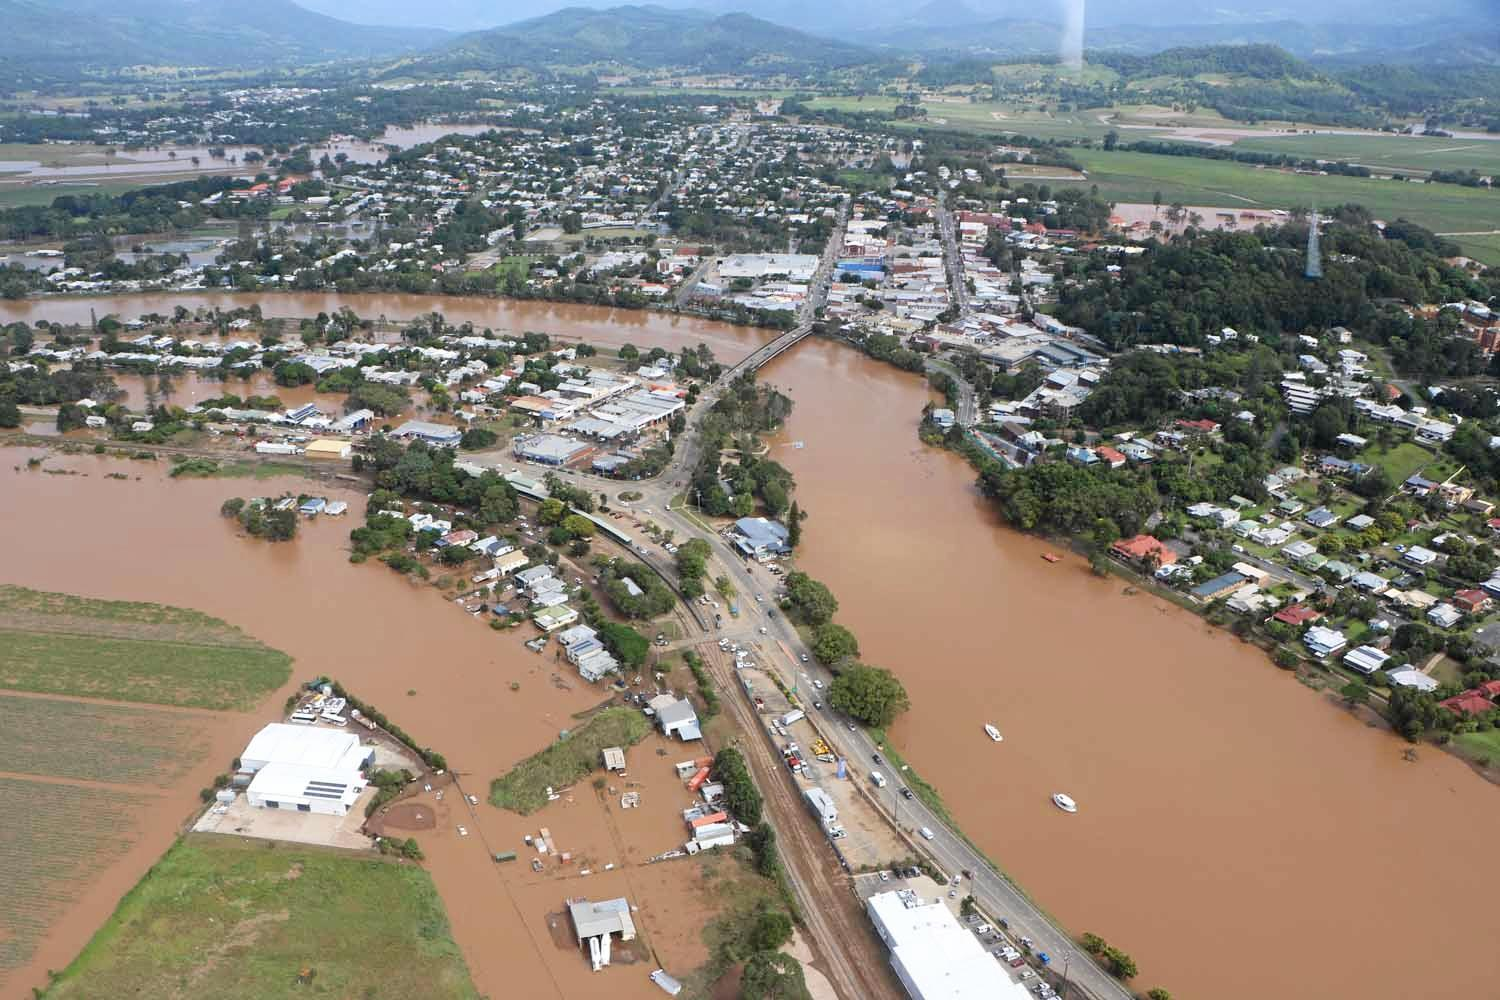 Aerial shot of Murwillumbah taken on April 1, 2017.